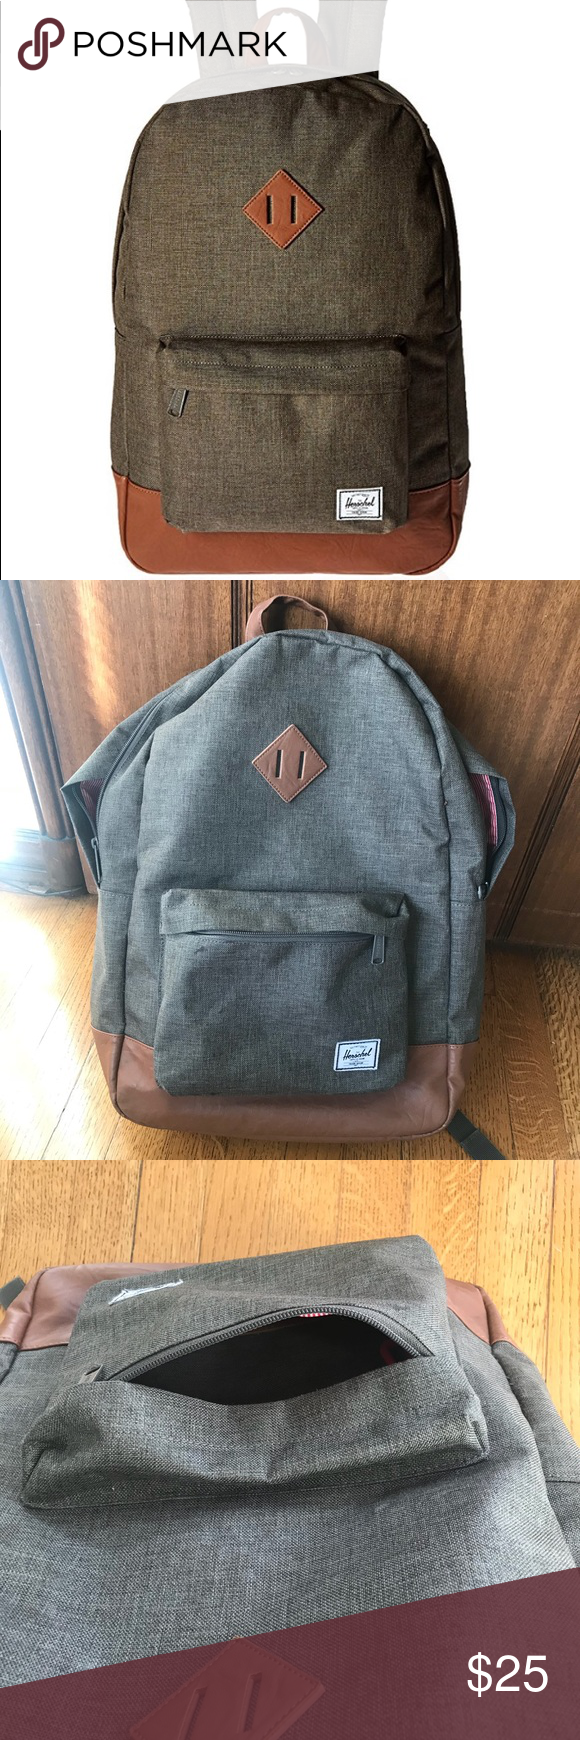 b710a92f852 Herschel Supply Co. Heritage Backpack Canteen Crosshatch Tan Synthetic  Leather. Used